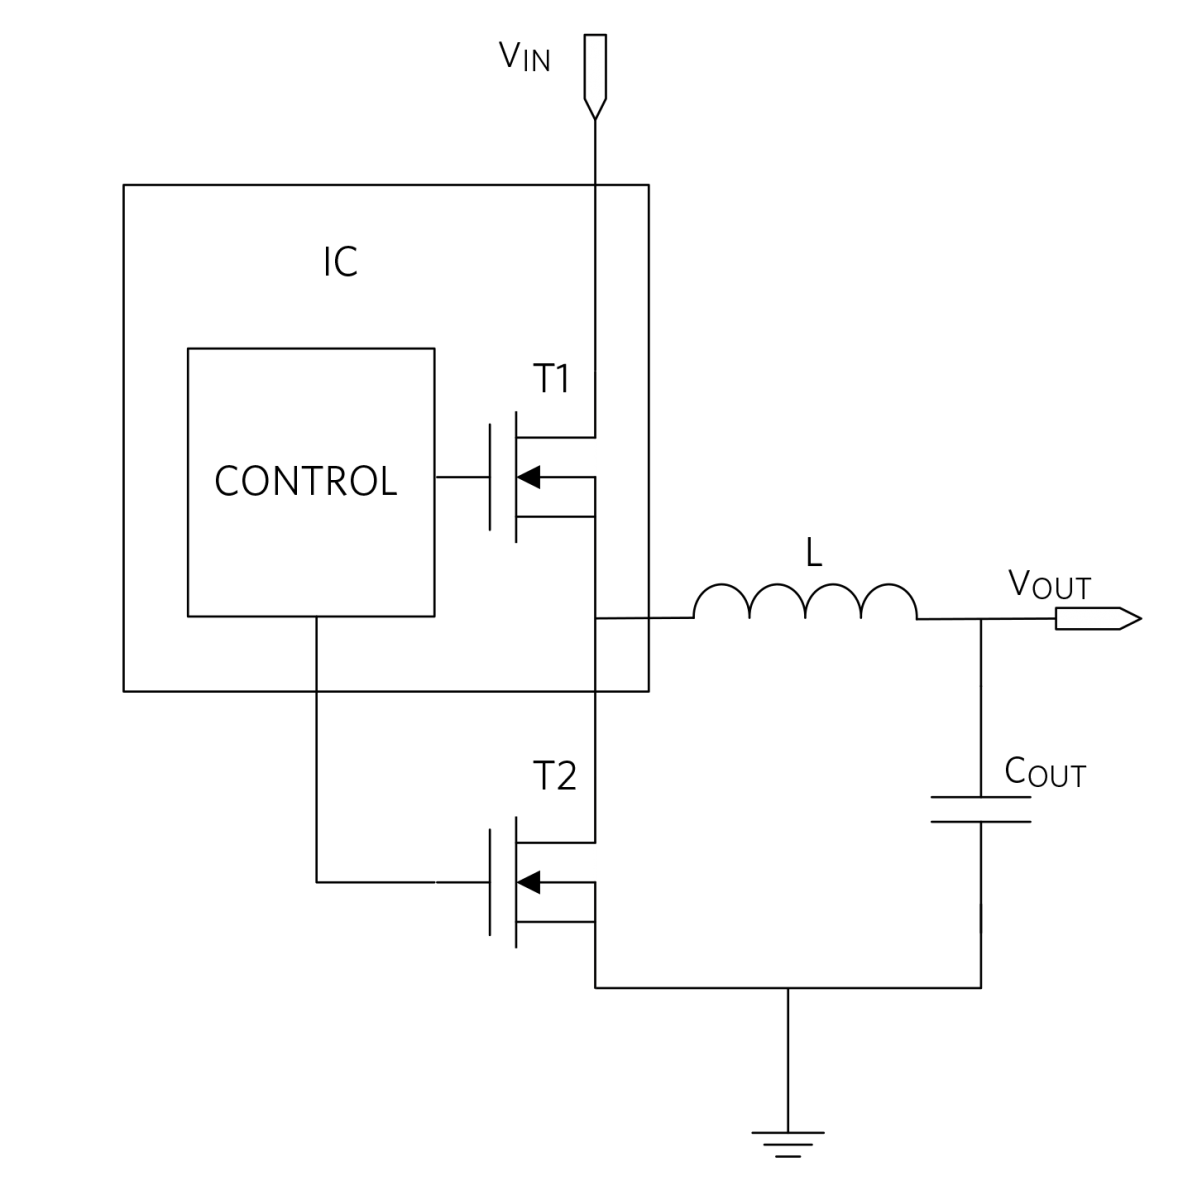 Simplified Synchronous Buck Architecture